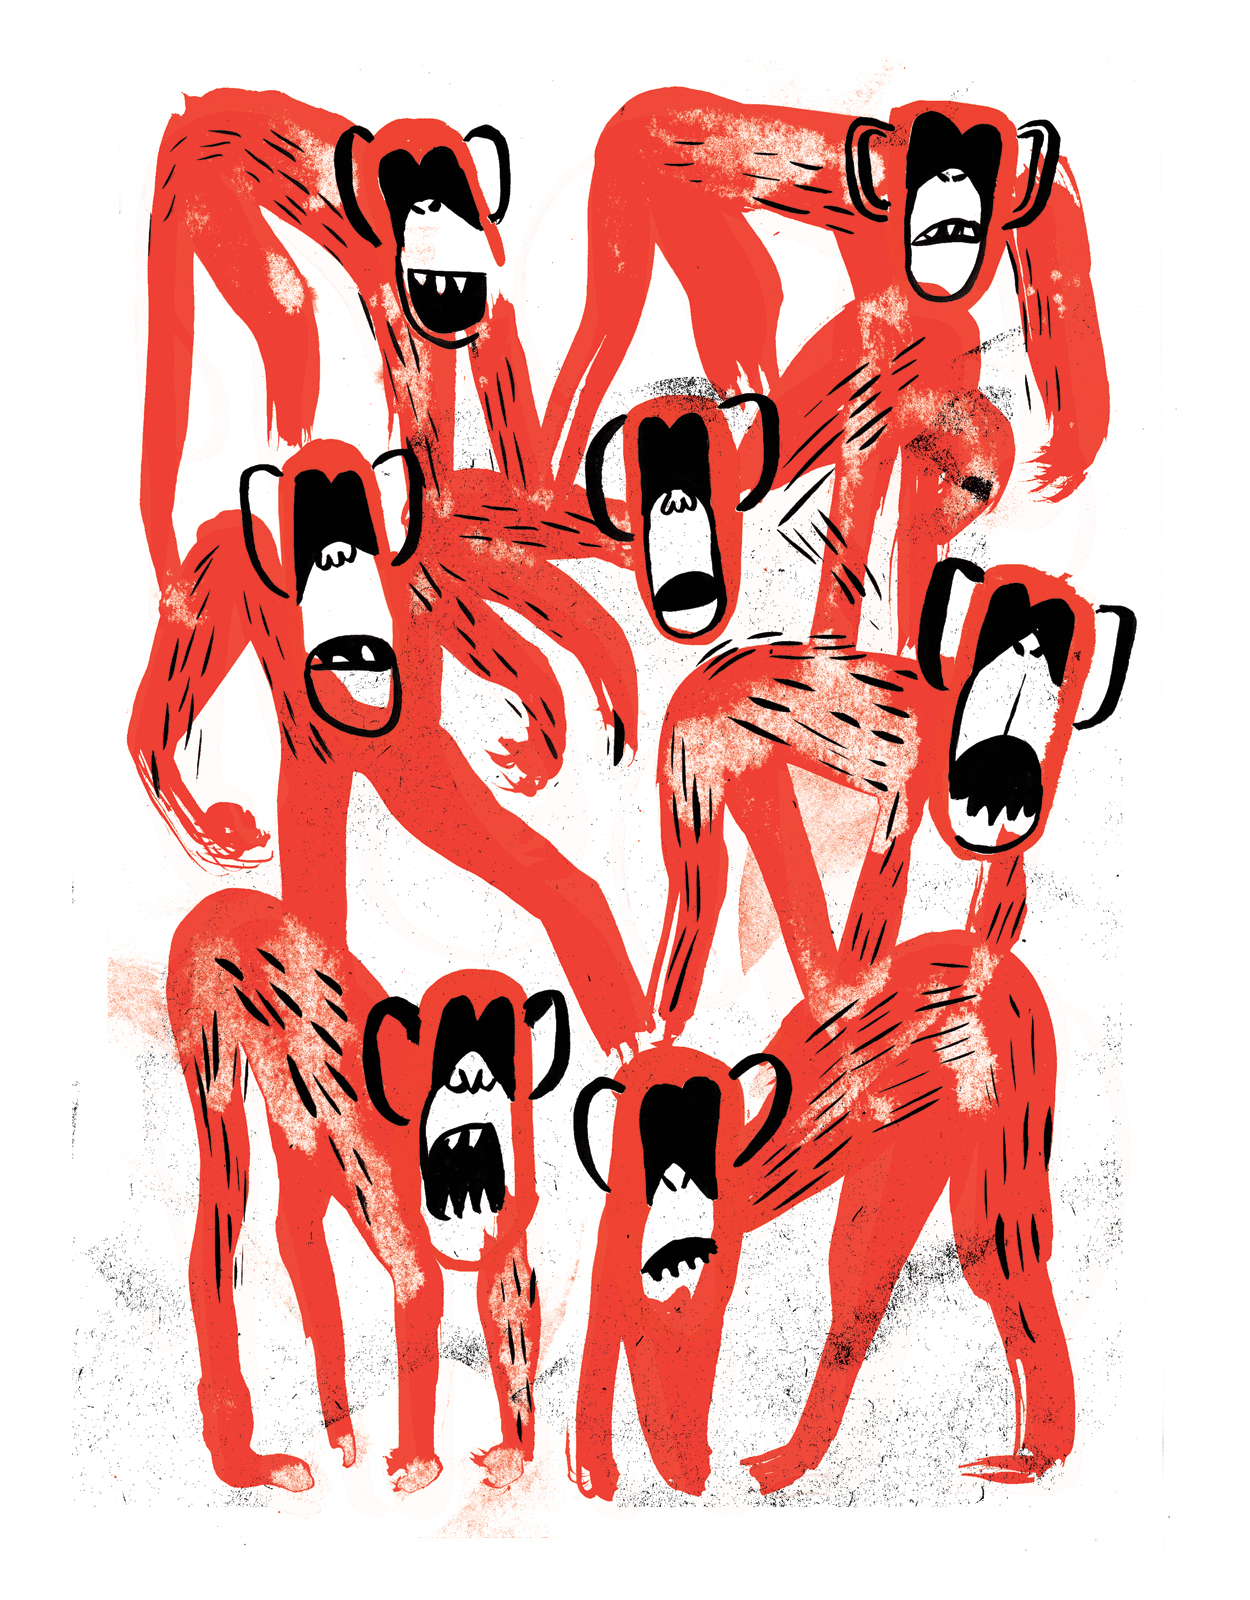 1250x1600 Winning Work From The Aoi Illustration Awards Creativereview